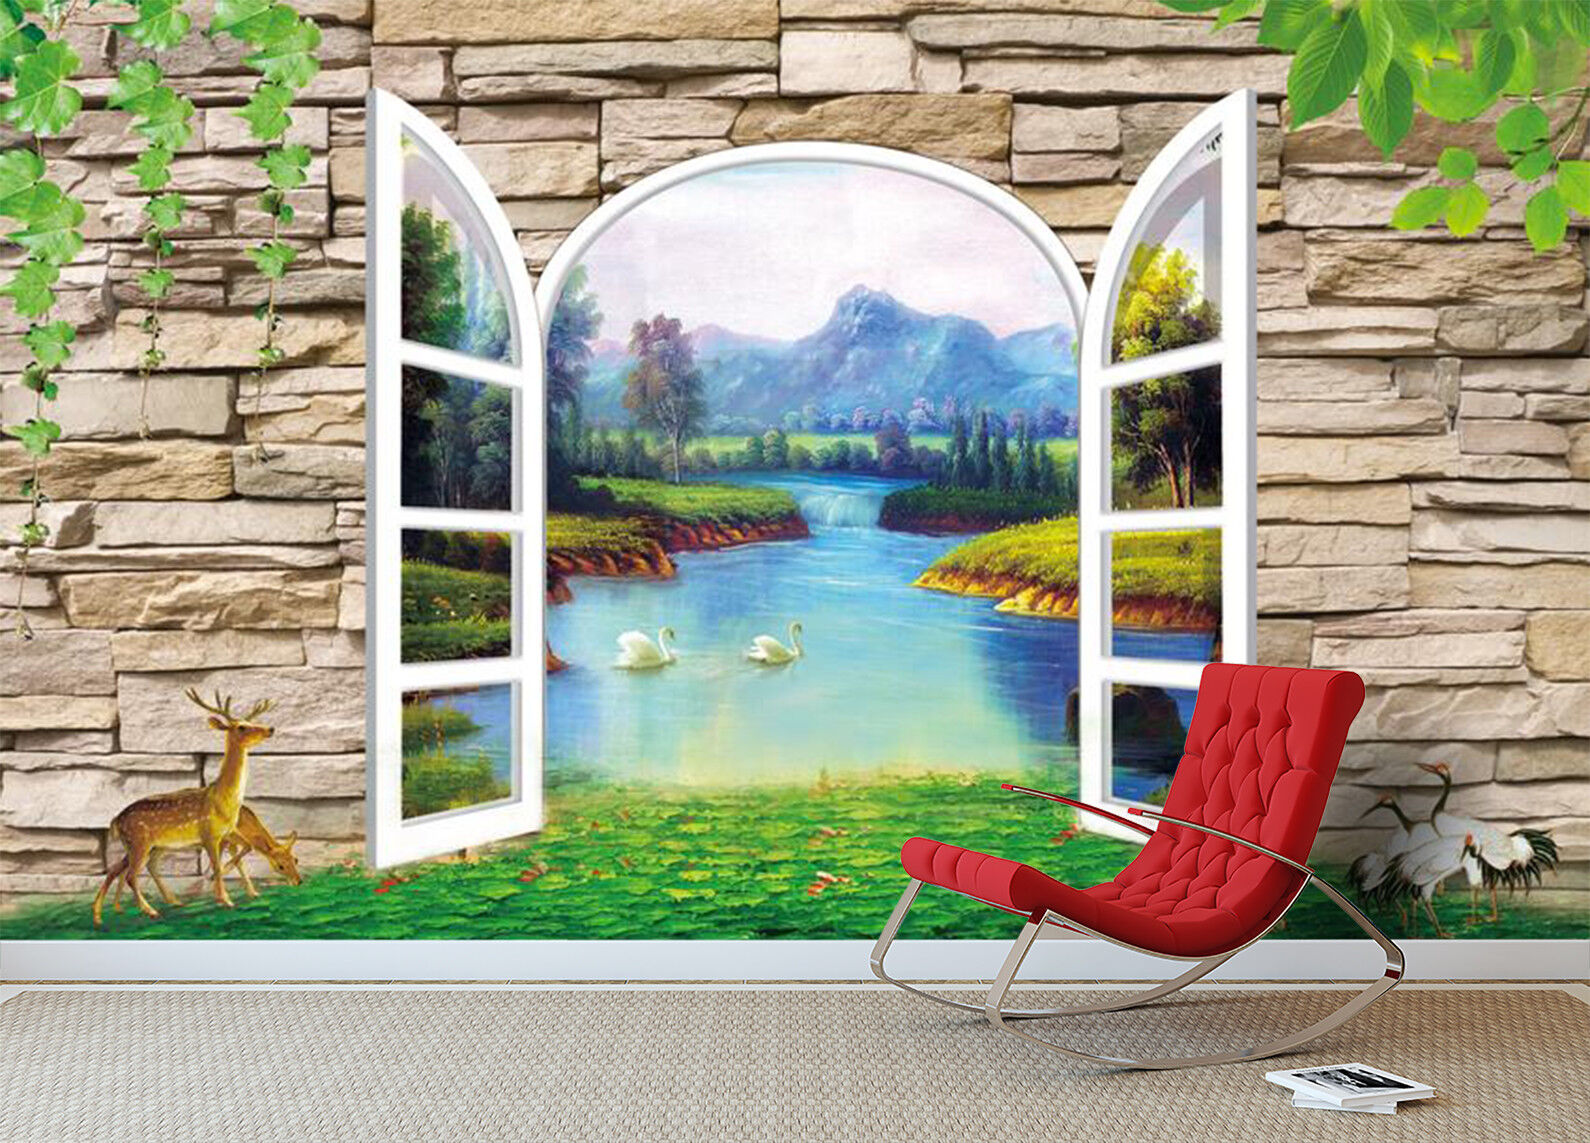 3D Animals Window 753 Wall Paper Murals Wall Print Wall Wallpaper Mural AU Kyra